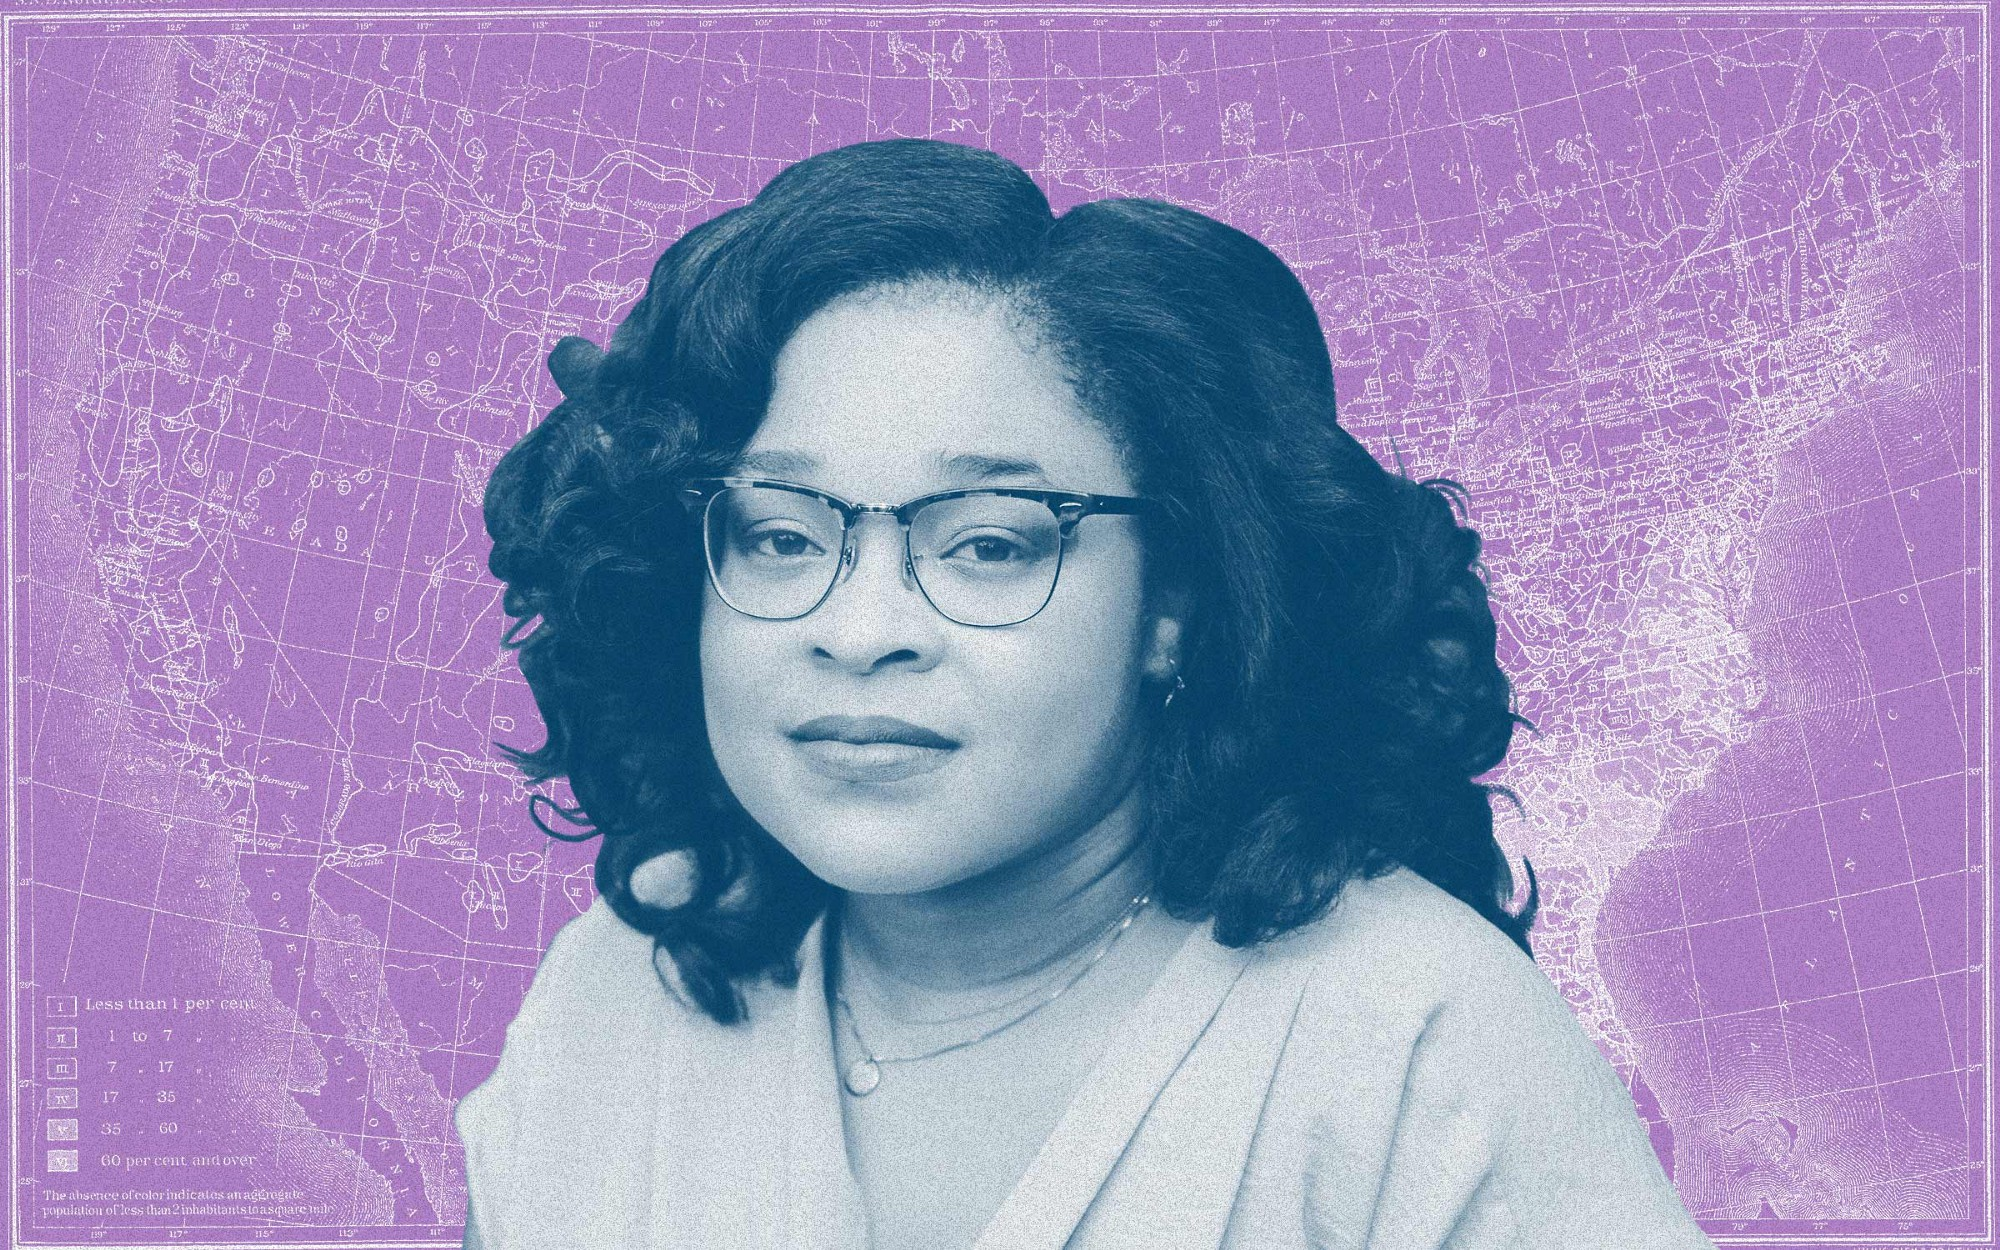 Photo treatment of a close-up photo of Morgan Jerkins against a violet-colored map of the Great Migration in the background.